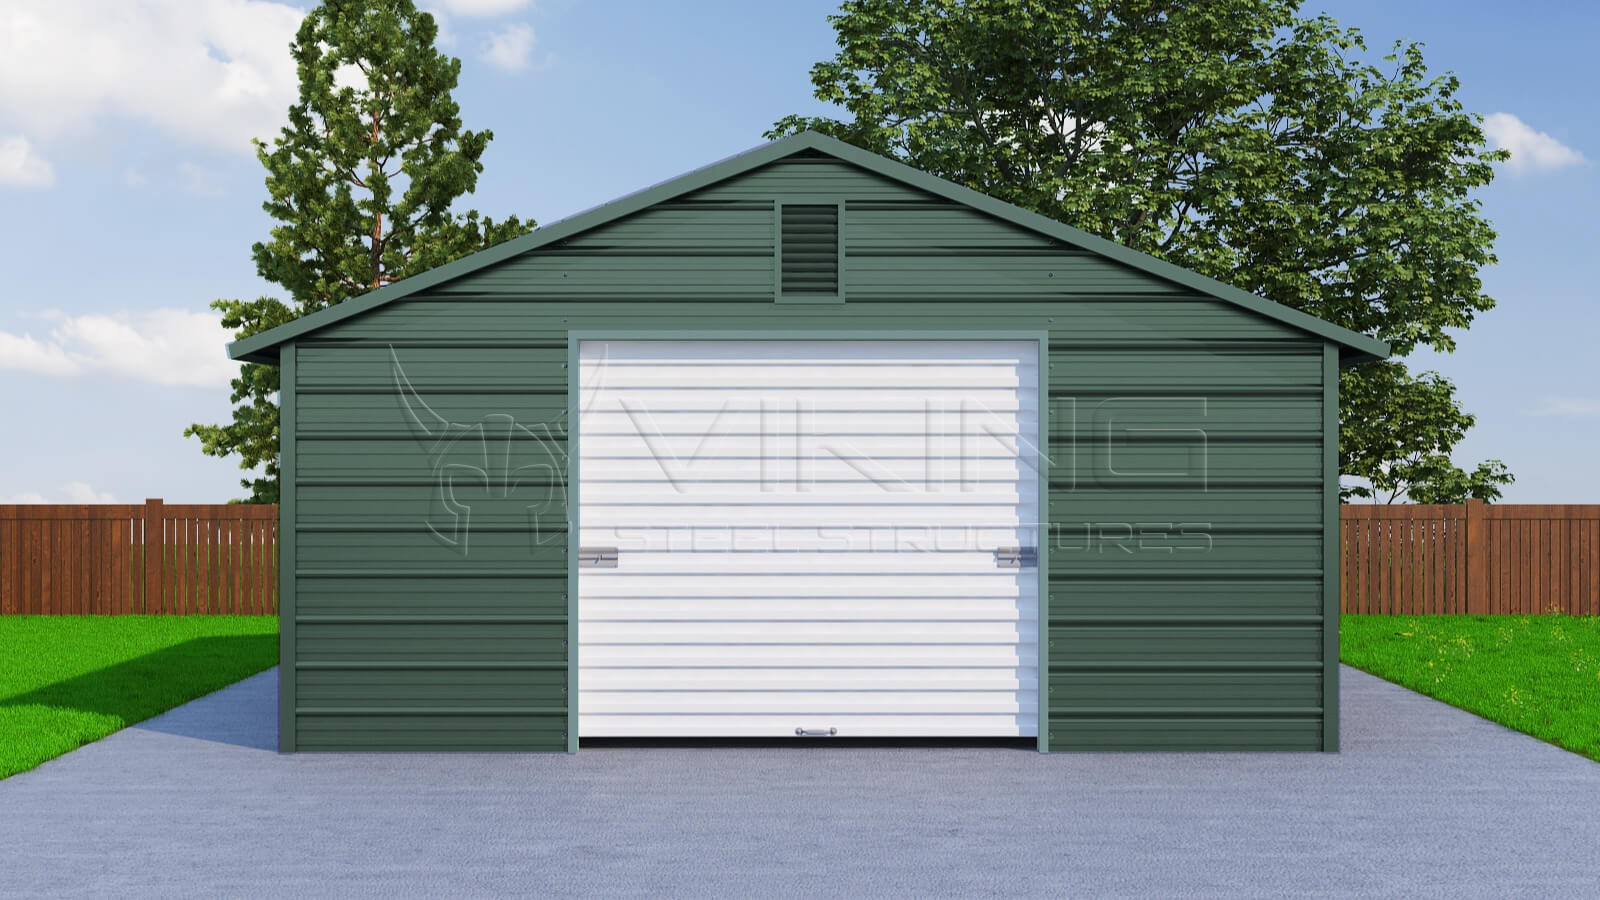 Top Reasons Why Vertical Roof Garages is the Right Investment